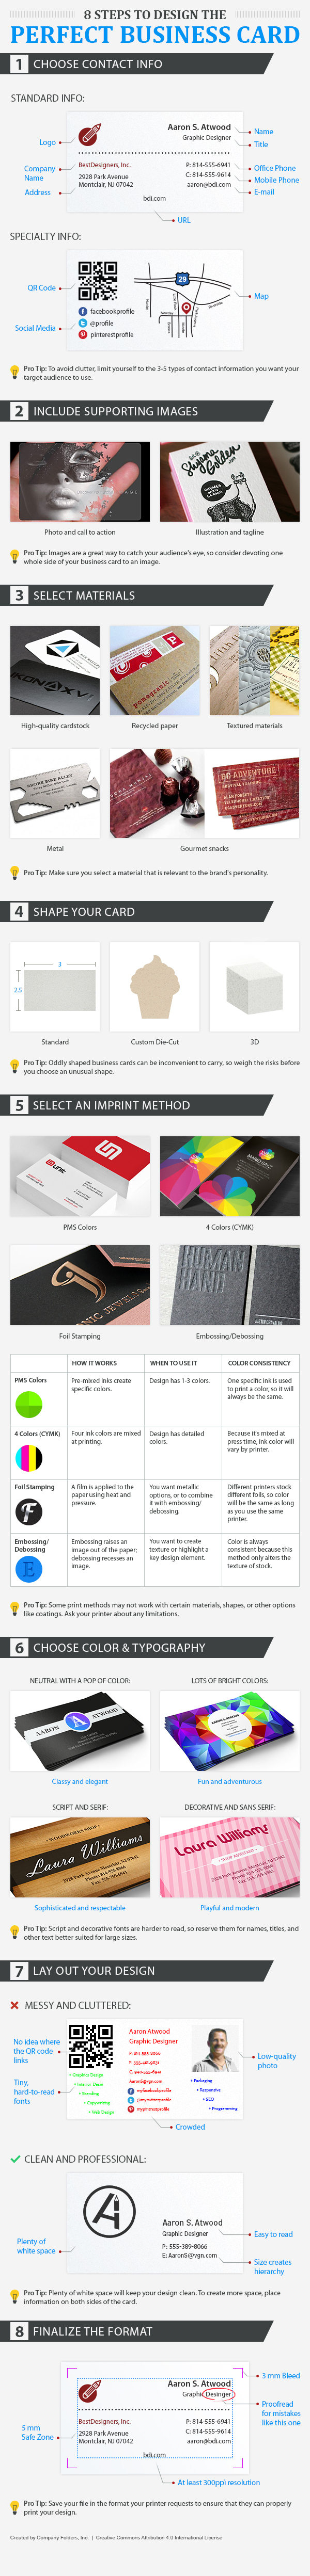 business card design tips infographic